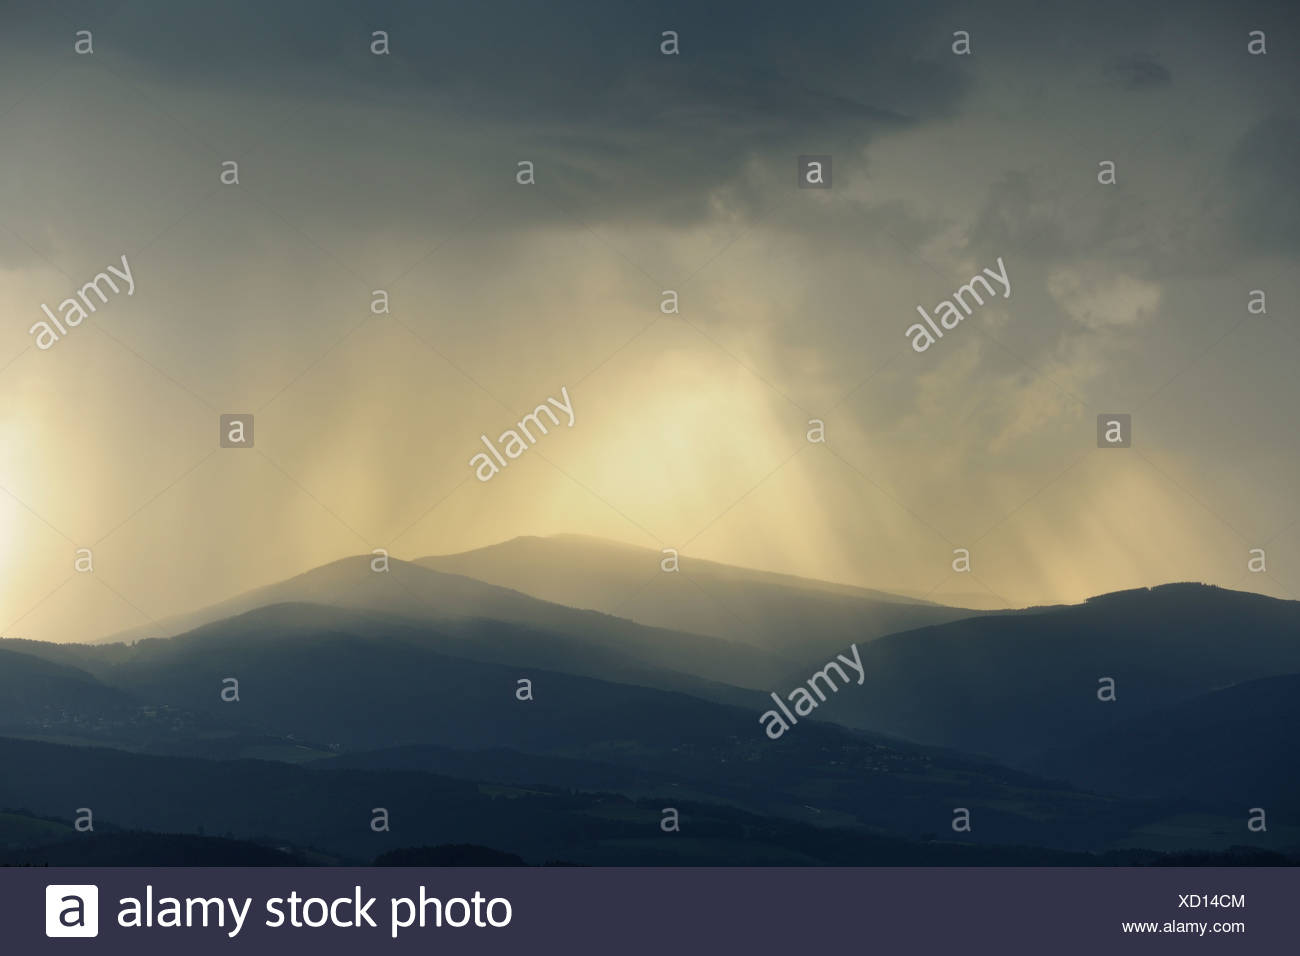 Approaching rain, Hutwisch viewpoint, Lower Austria, Austria, Europe - Stock Image